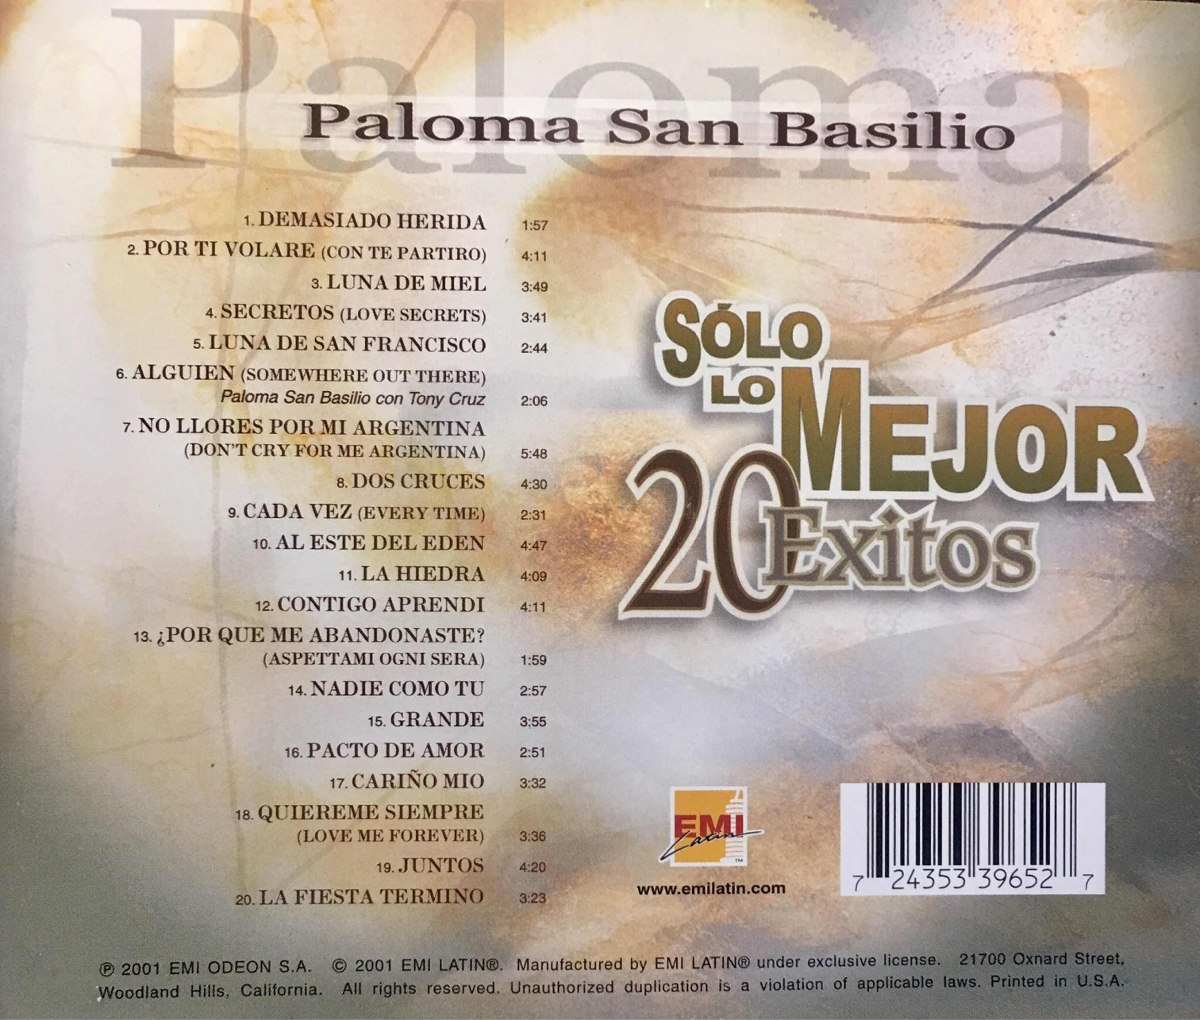 Youtube Paloma San Basilio Libre Cd Paloma San Basilio Solo Lo Mejor 20 Exitos Made In